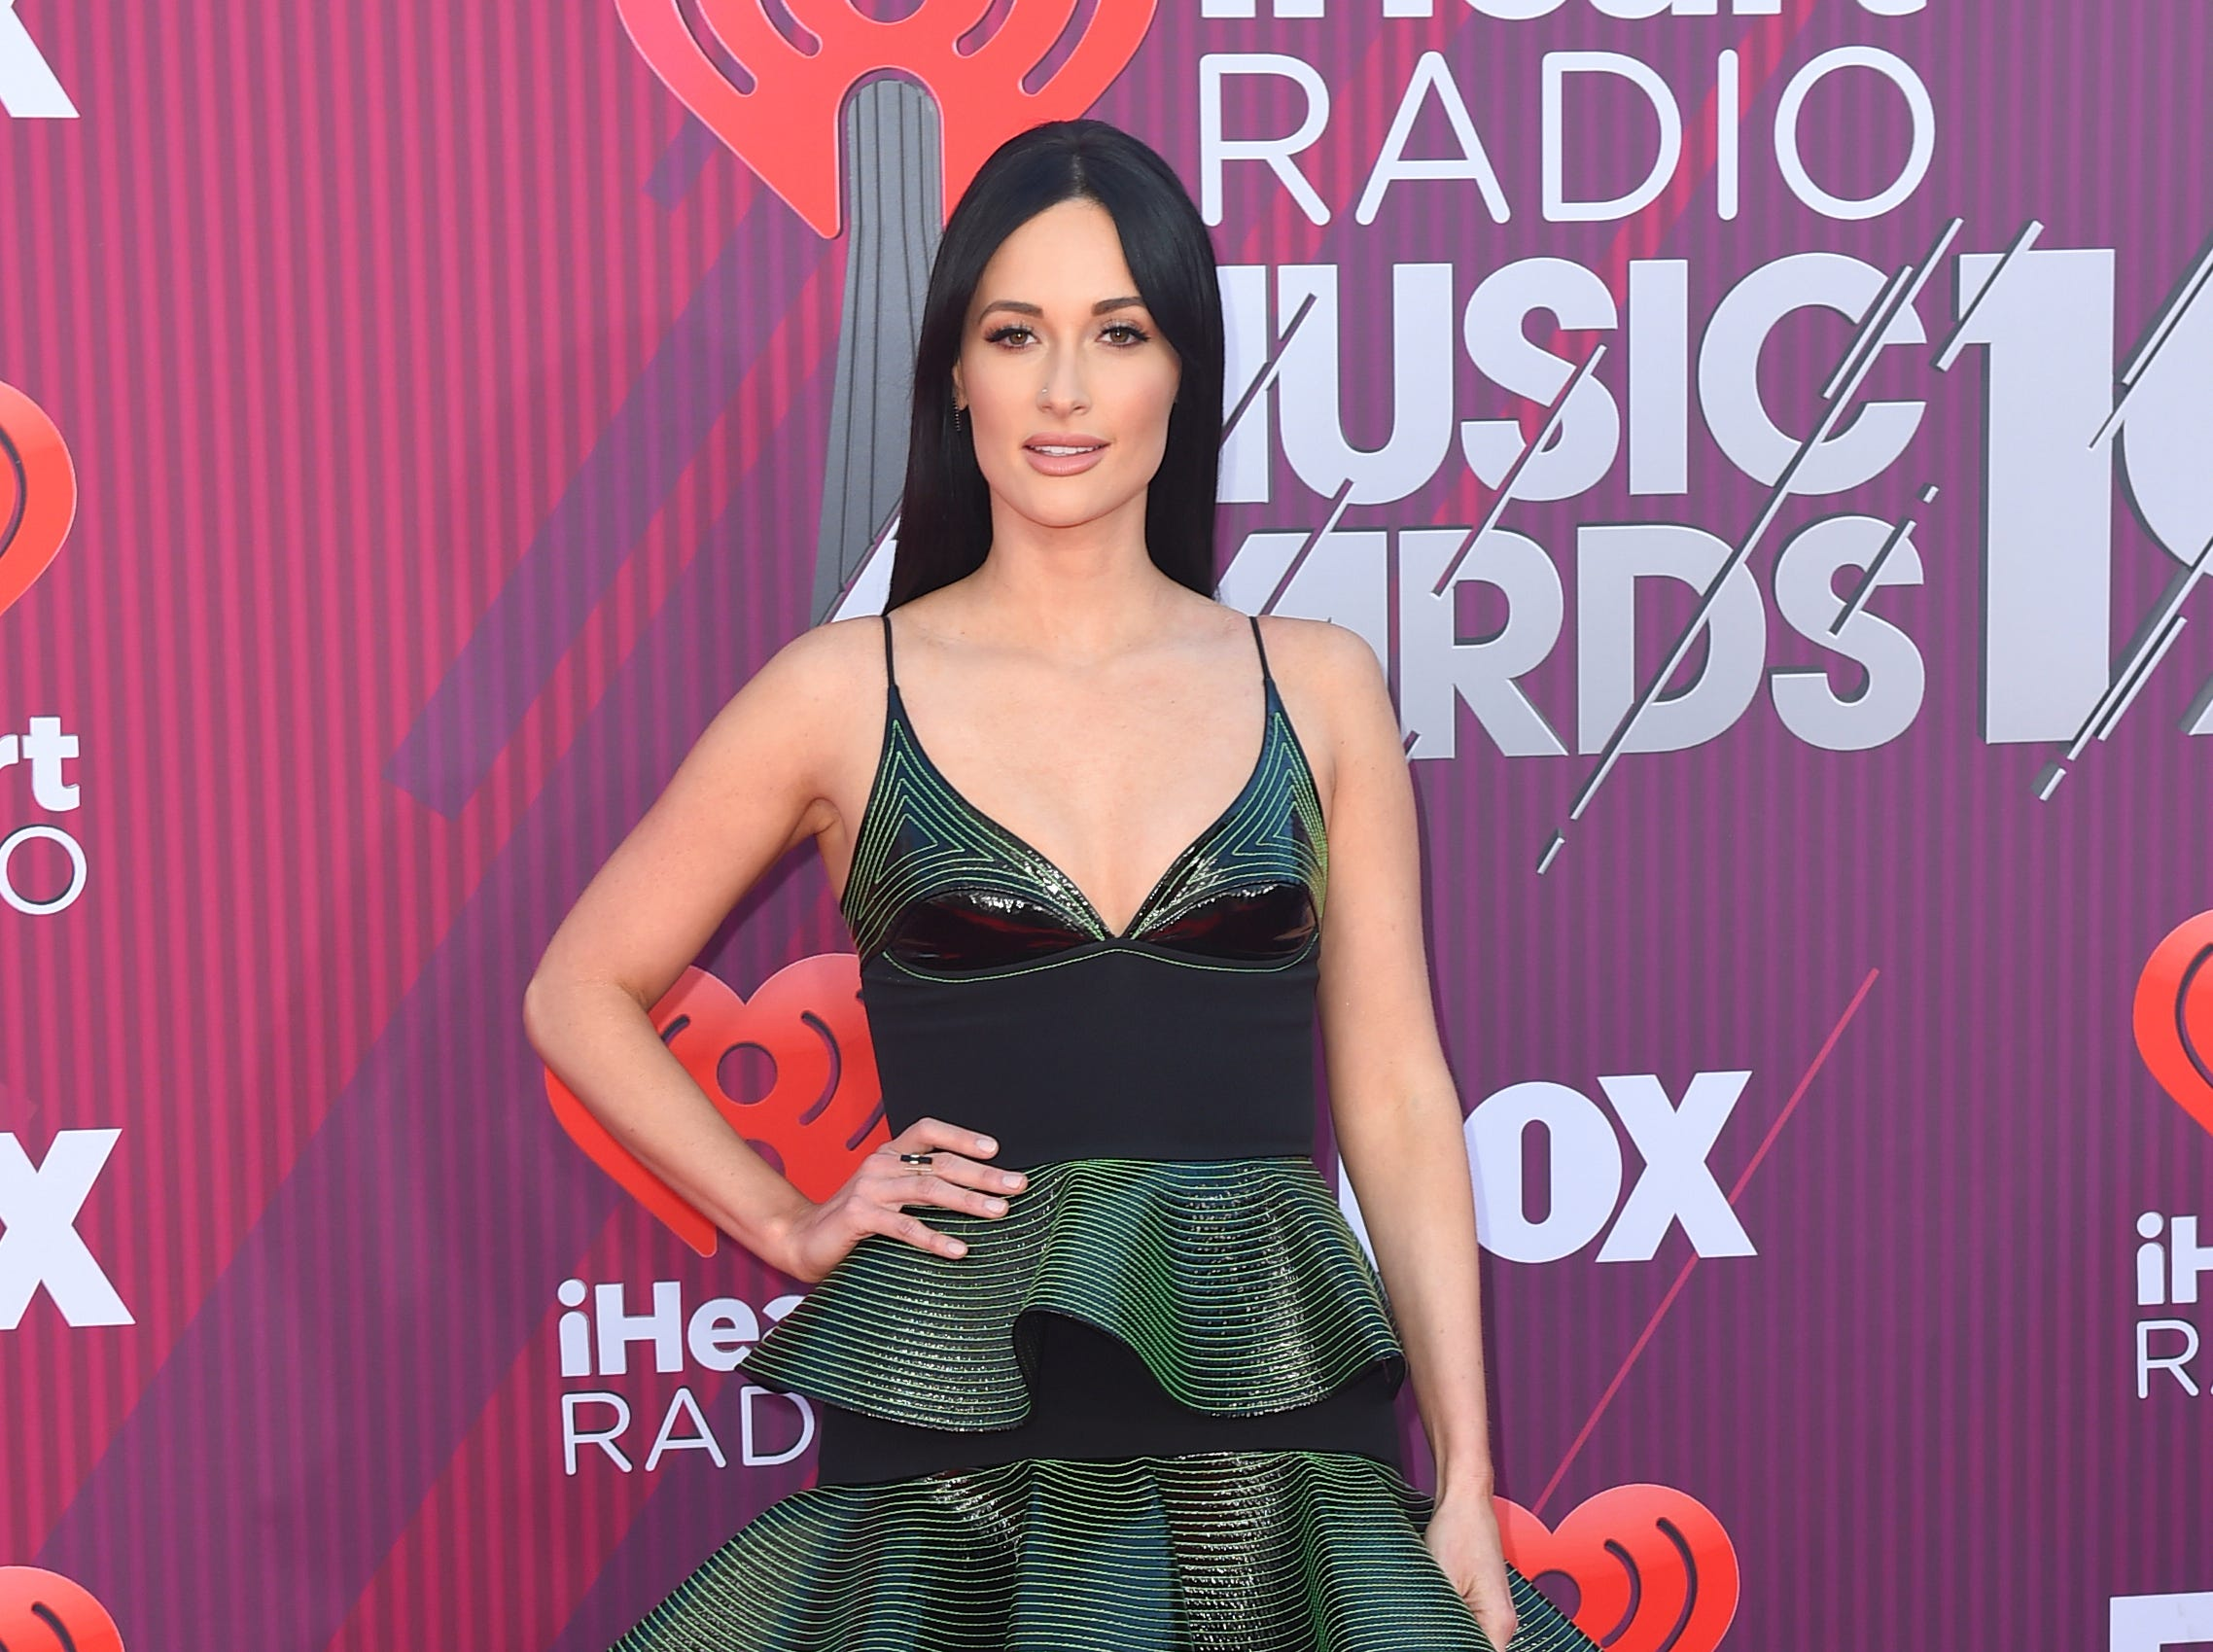 Kacey Musgraves arrives at the iHeartRadio Music Awards.